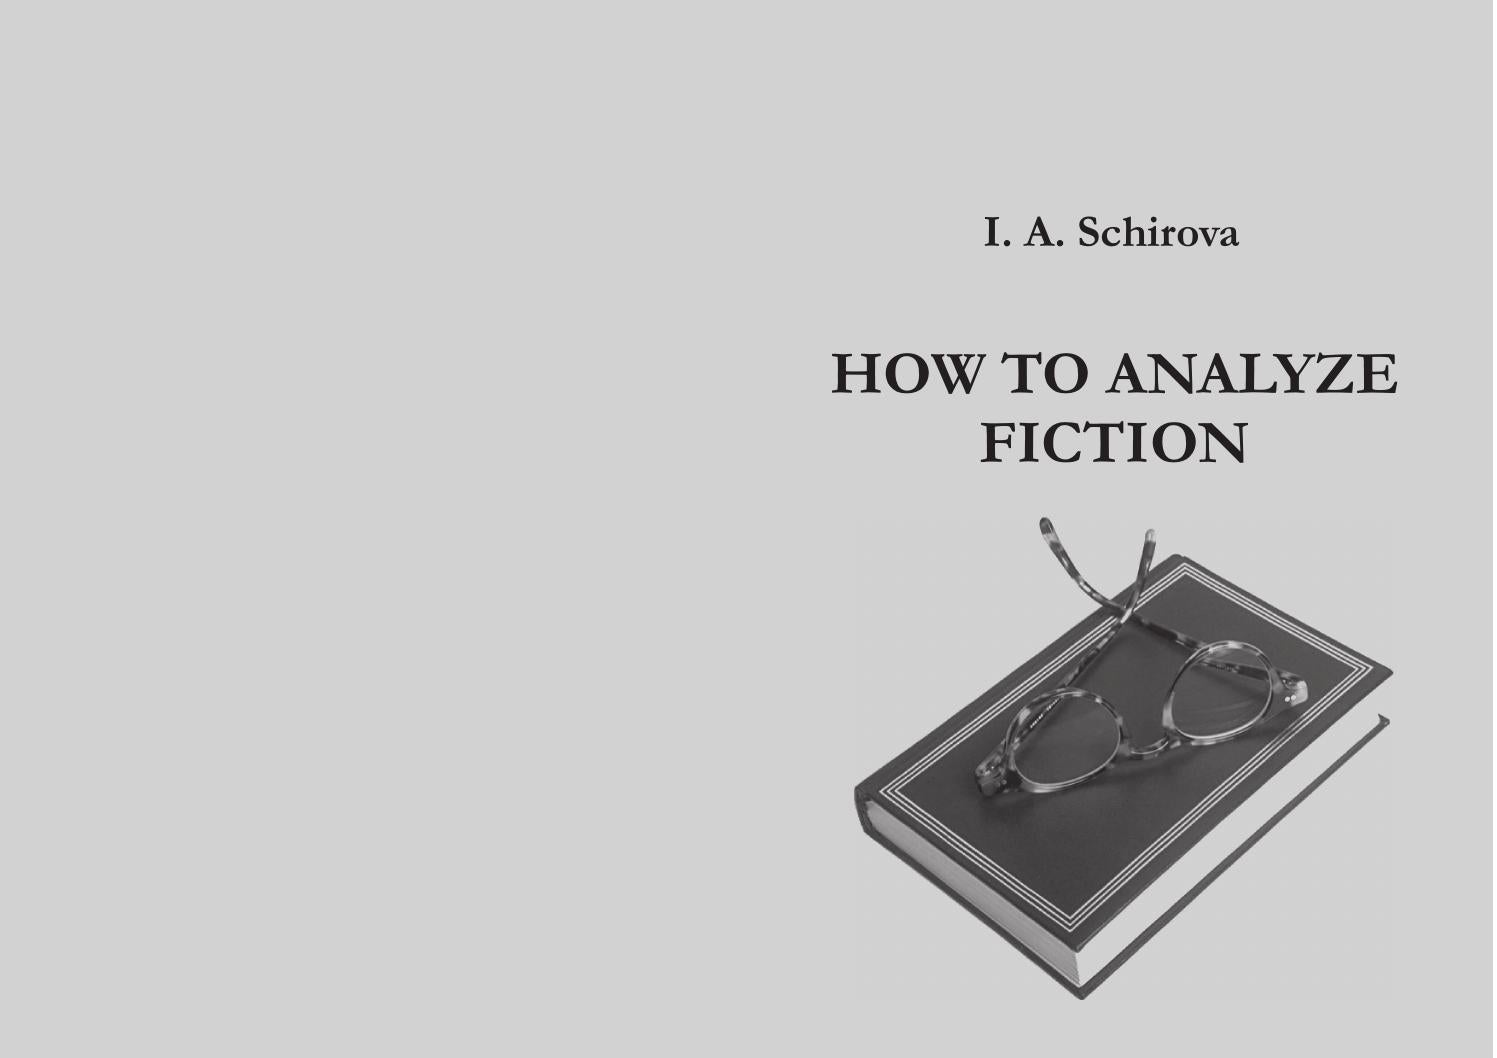 How to Analyze Fiction recommendations